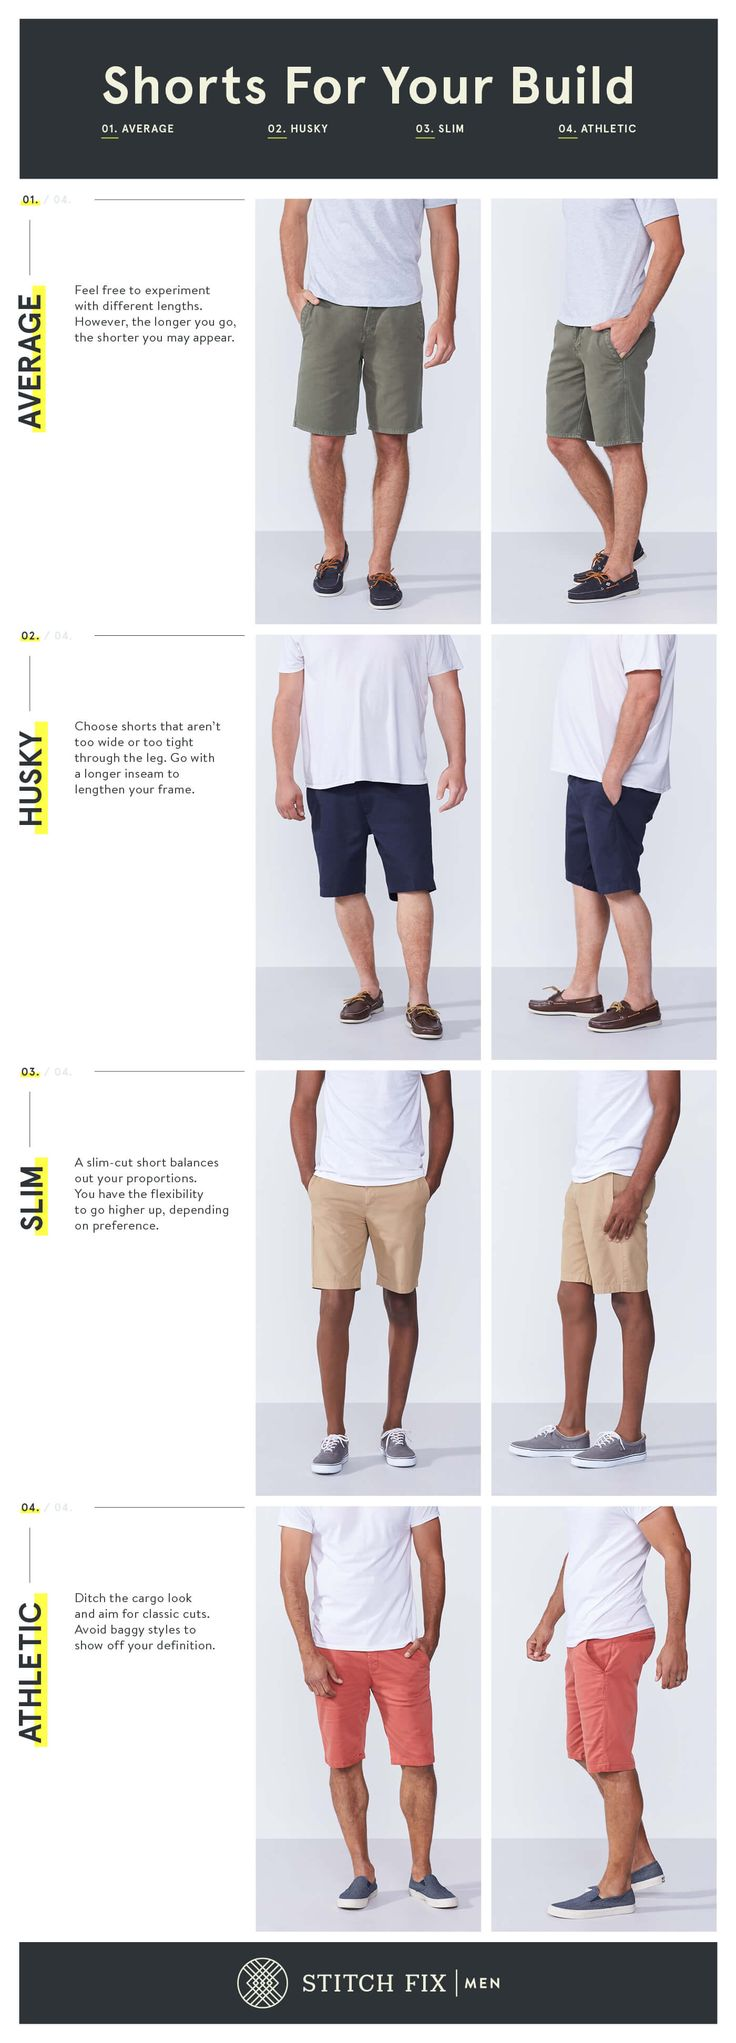 The Best-Fitting Shorts For Your Build | Stitch Fix Men